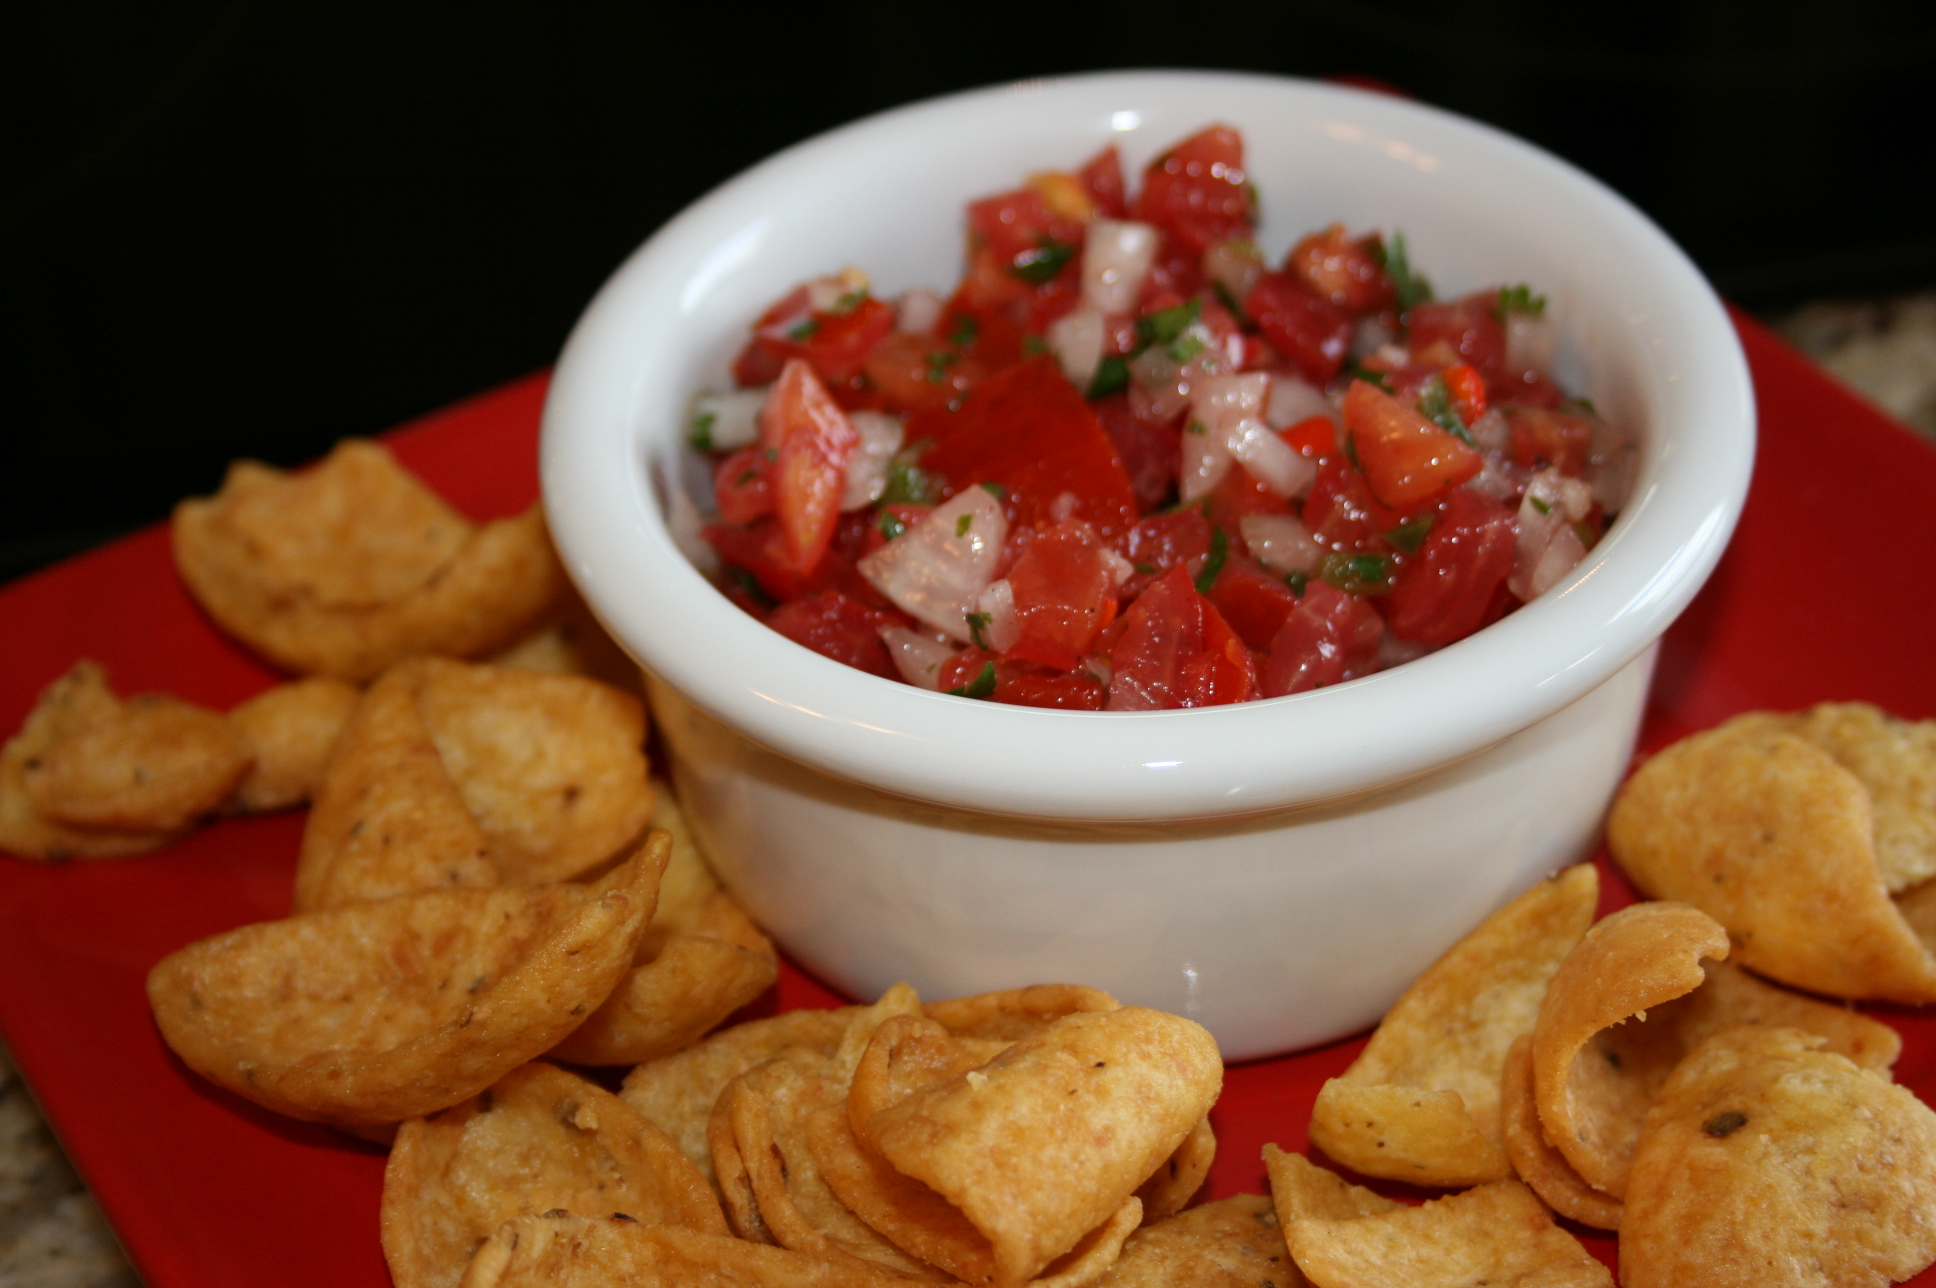 Summer Salsa Made From Your Backyard Garden Fruits and Vegetables